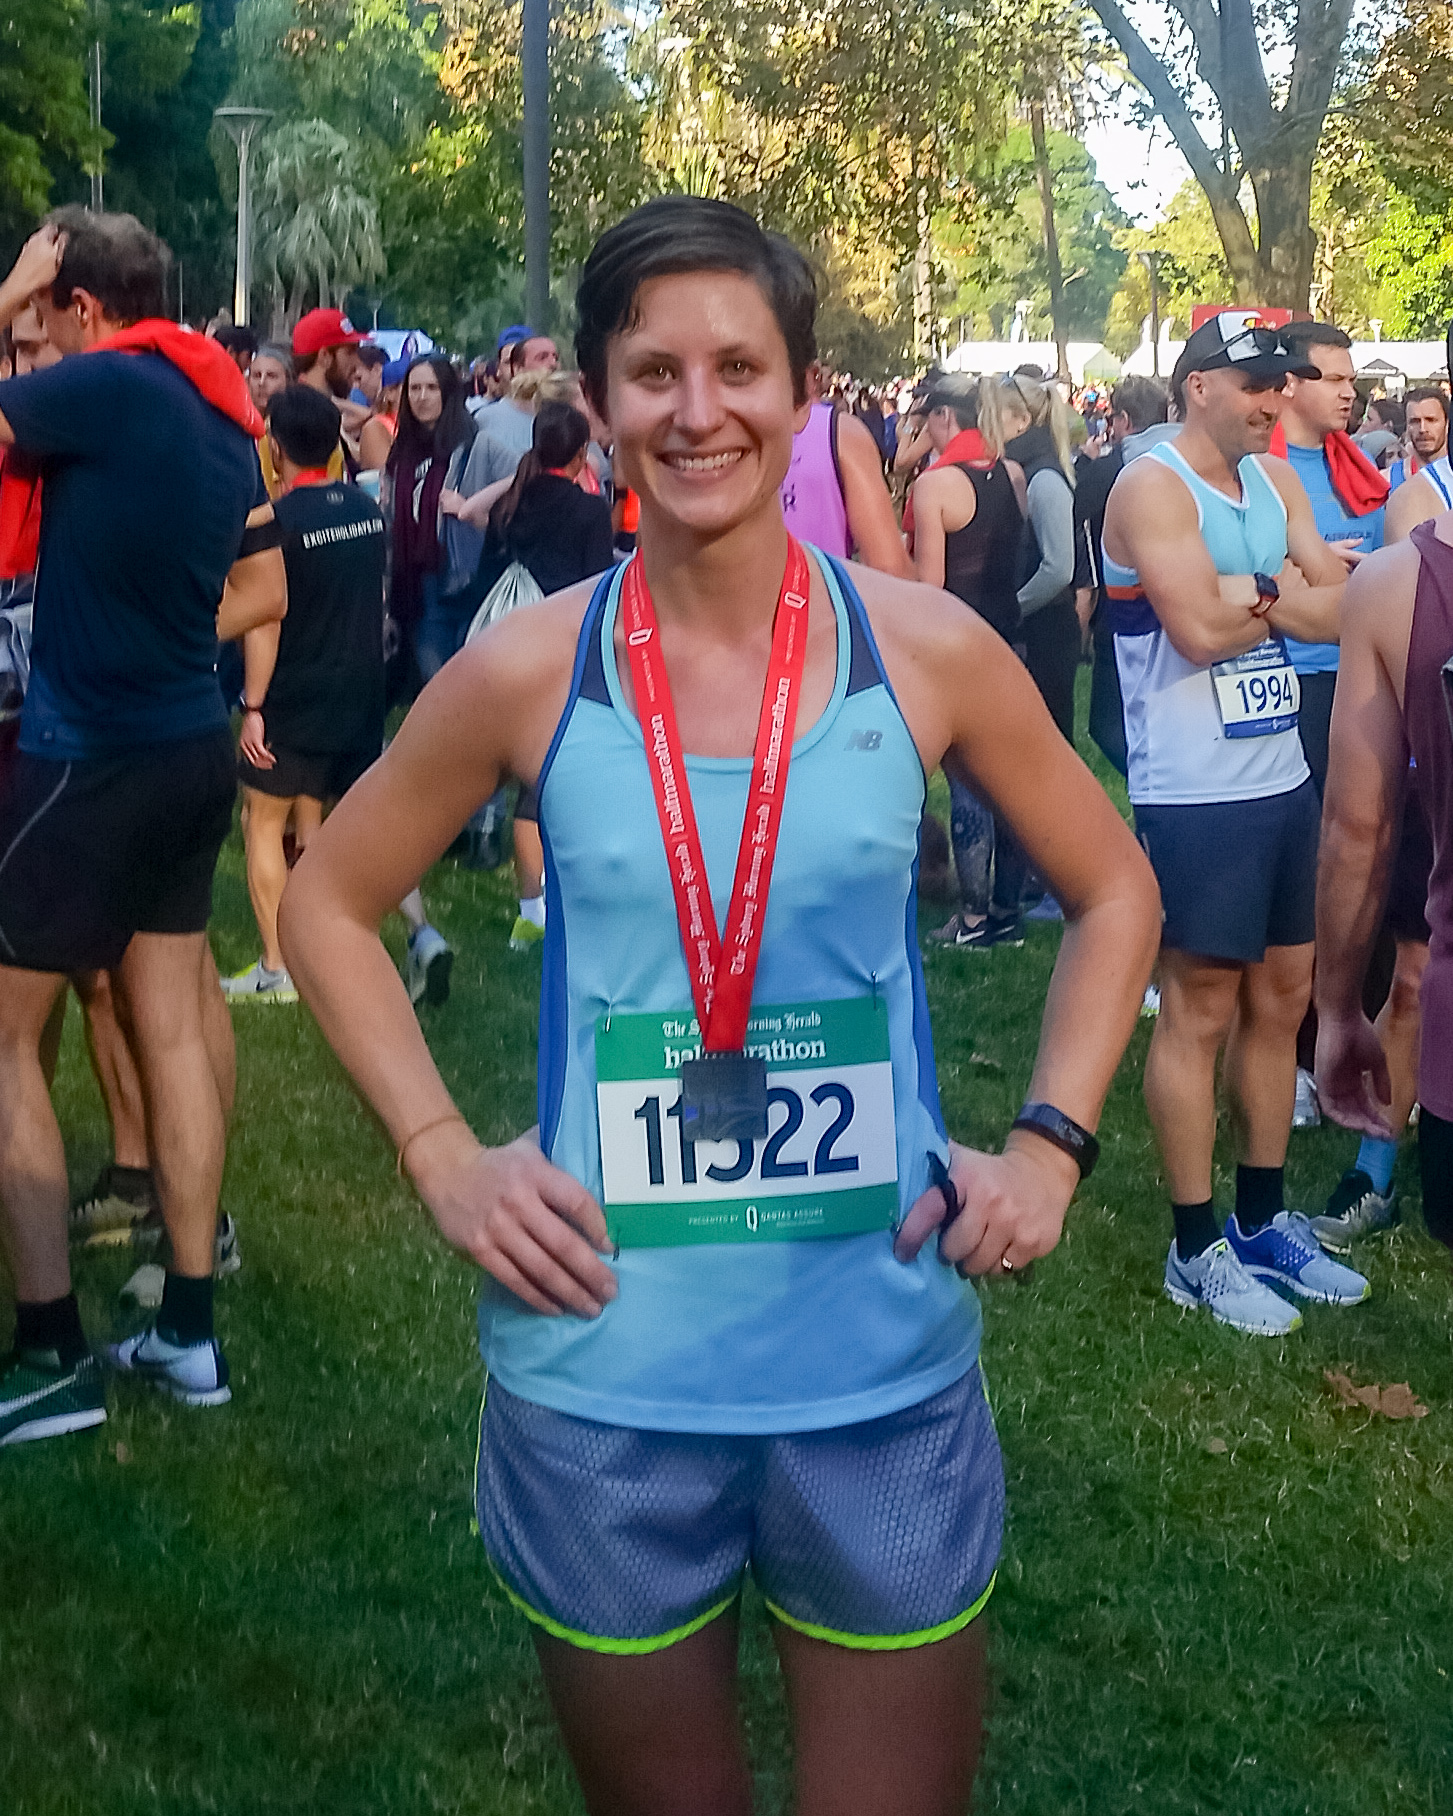 All smiles after running a new PB for the Sydney Morning Herald Half Marathon, May 2017.